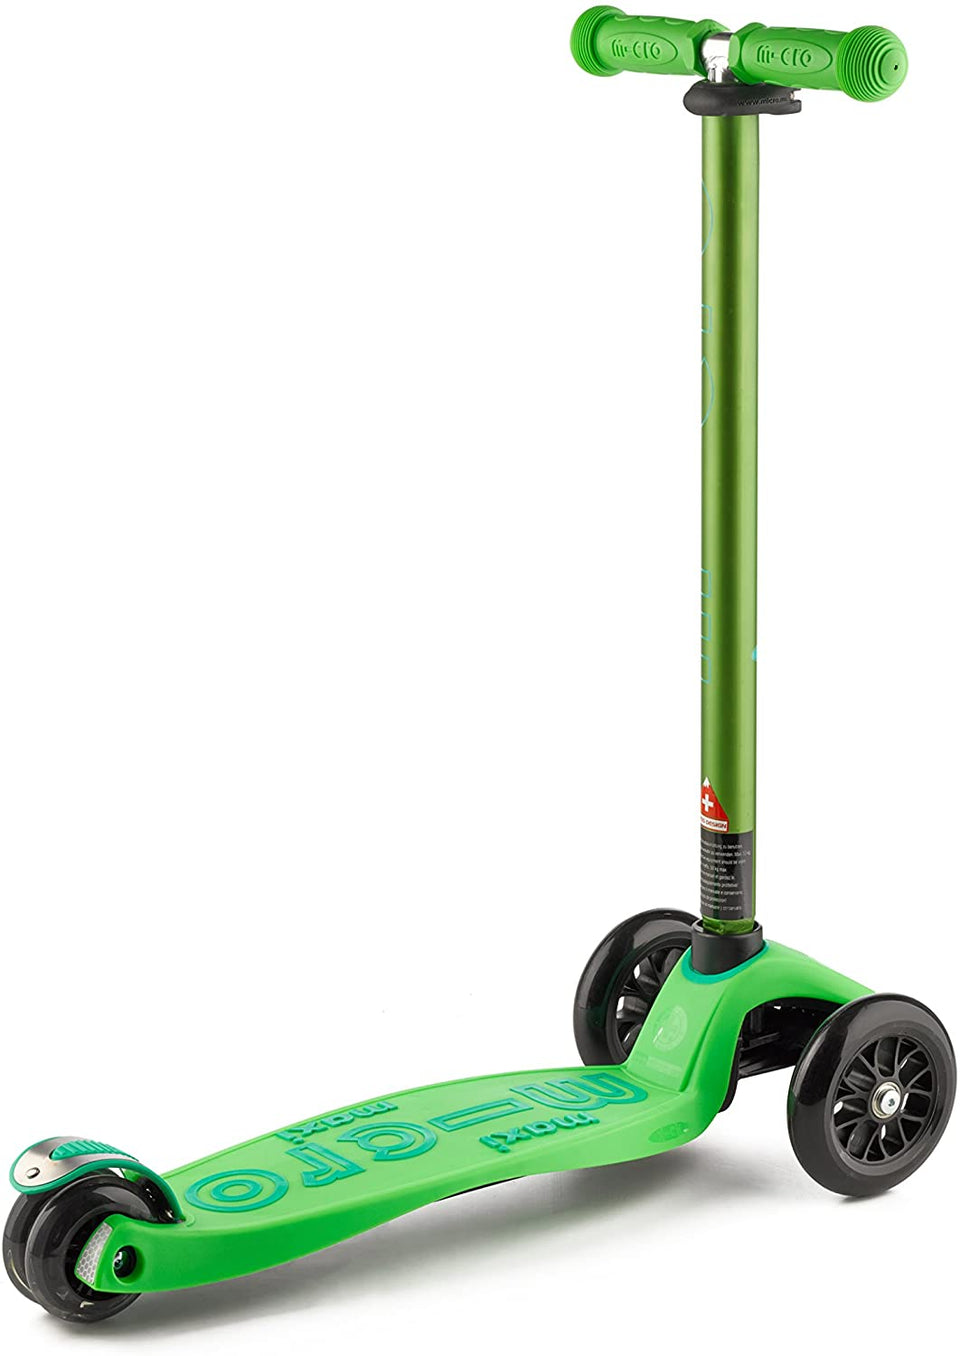 Maxi Micro Deluxe Green Scooter